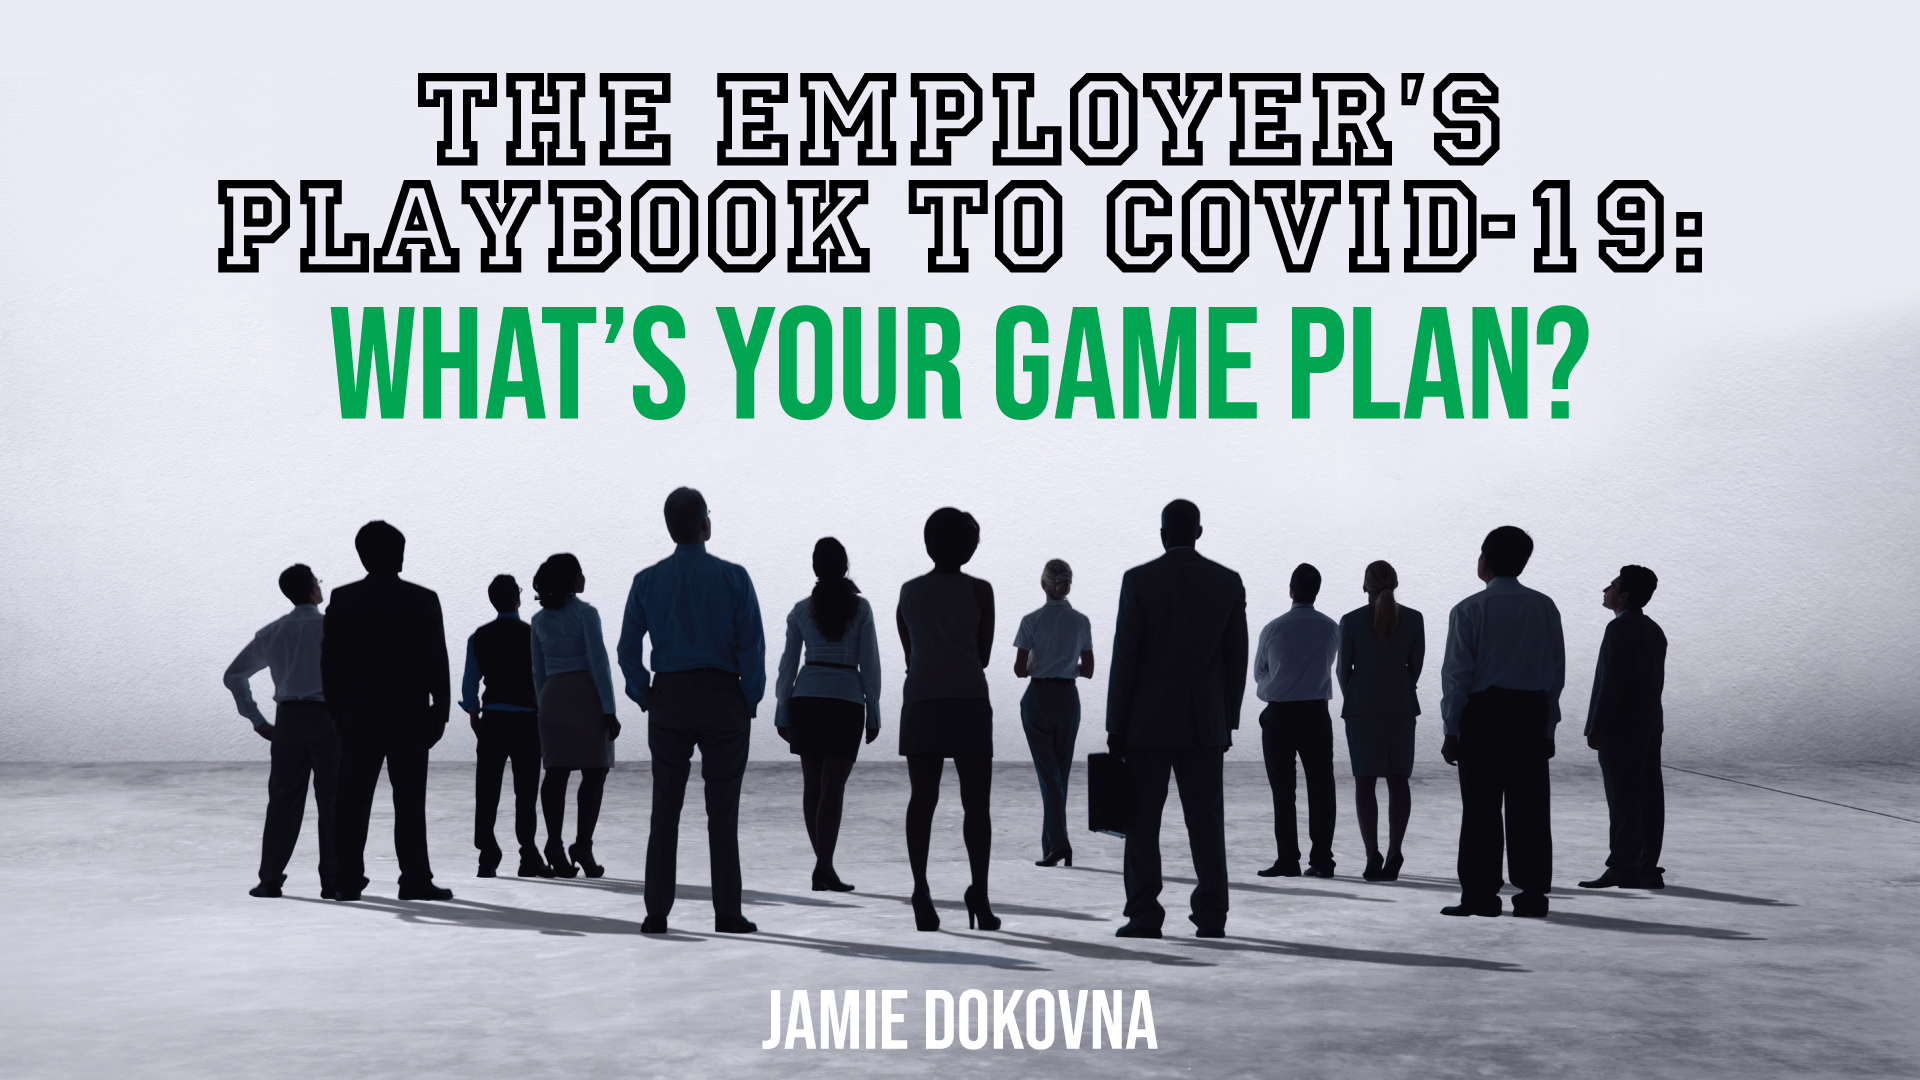 The Employer's Playbook to COVID-19